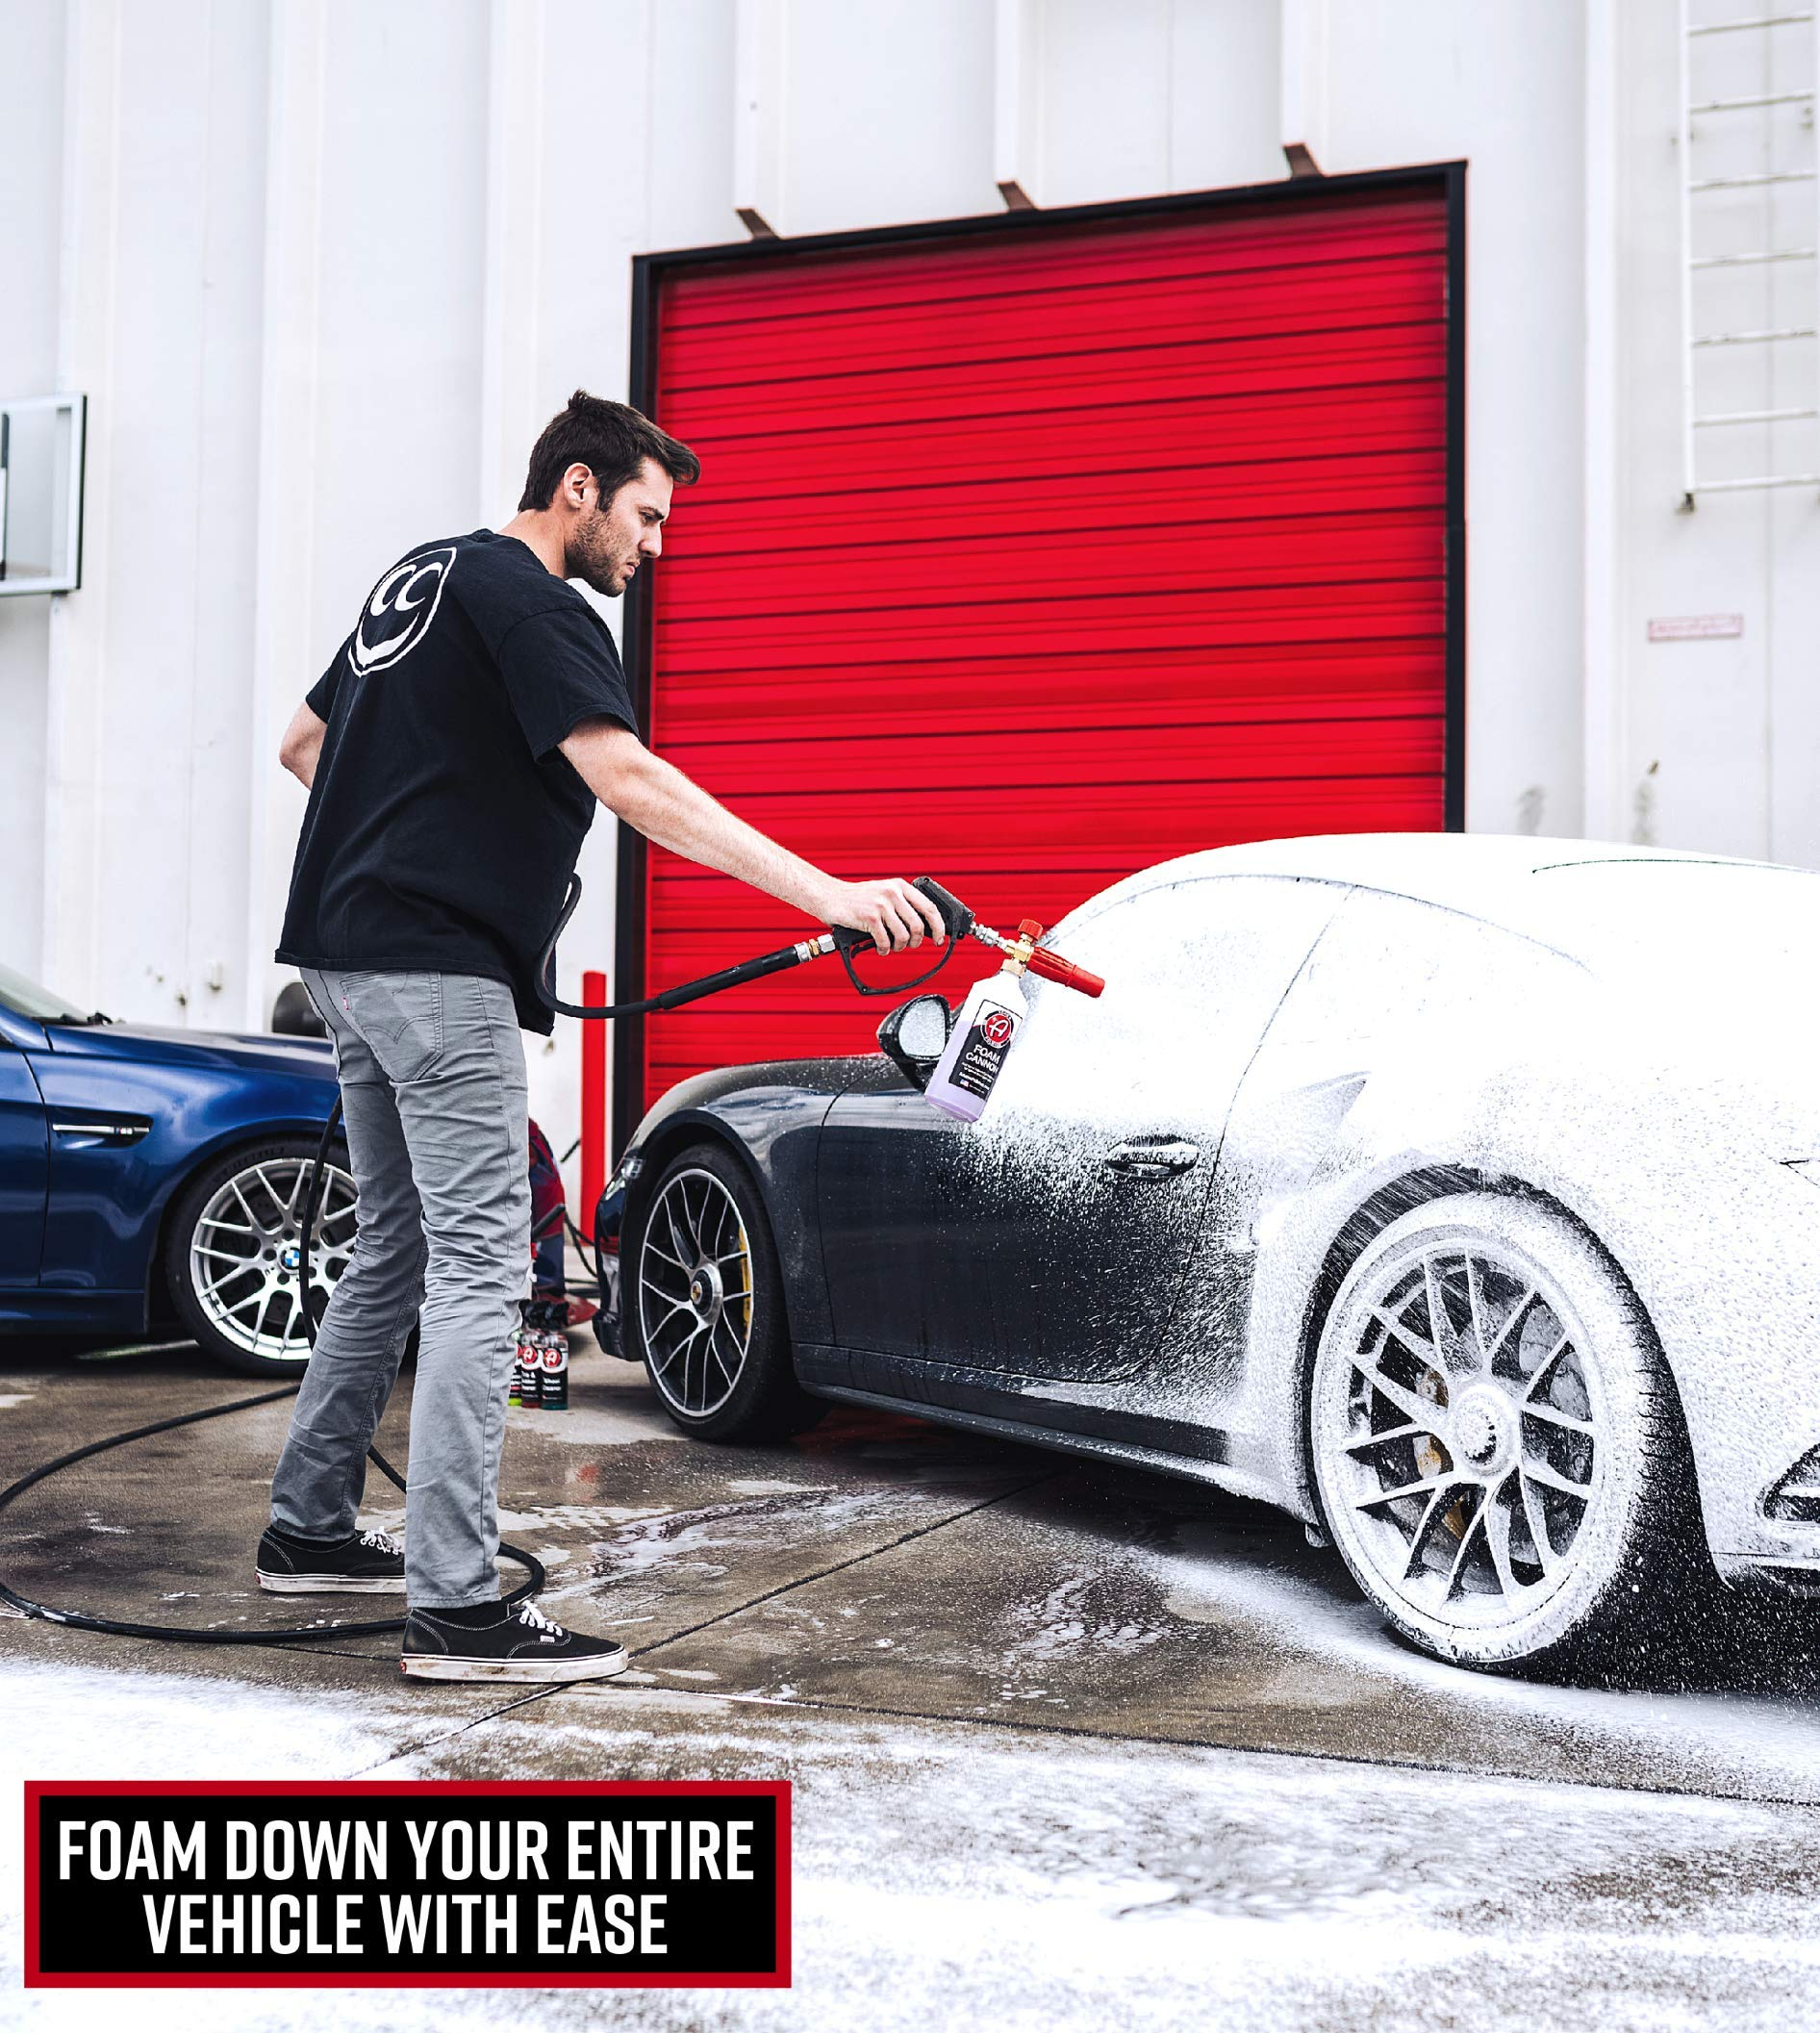 Adam's Red Foam Cannon - Produces Unbelievably Thick Foam - Adjustable Air Intake Valve and Fan Pattern for Optimal Car Washing (Foam Cannon & Snub Nose Combo) by Adam's Polishes (Image #4)